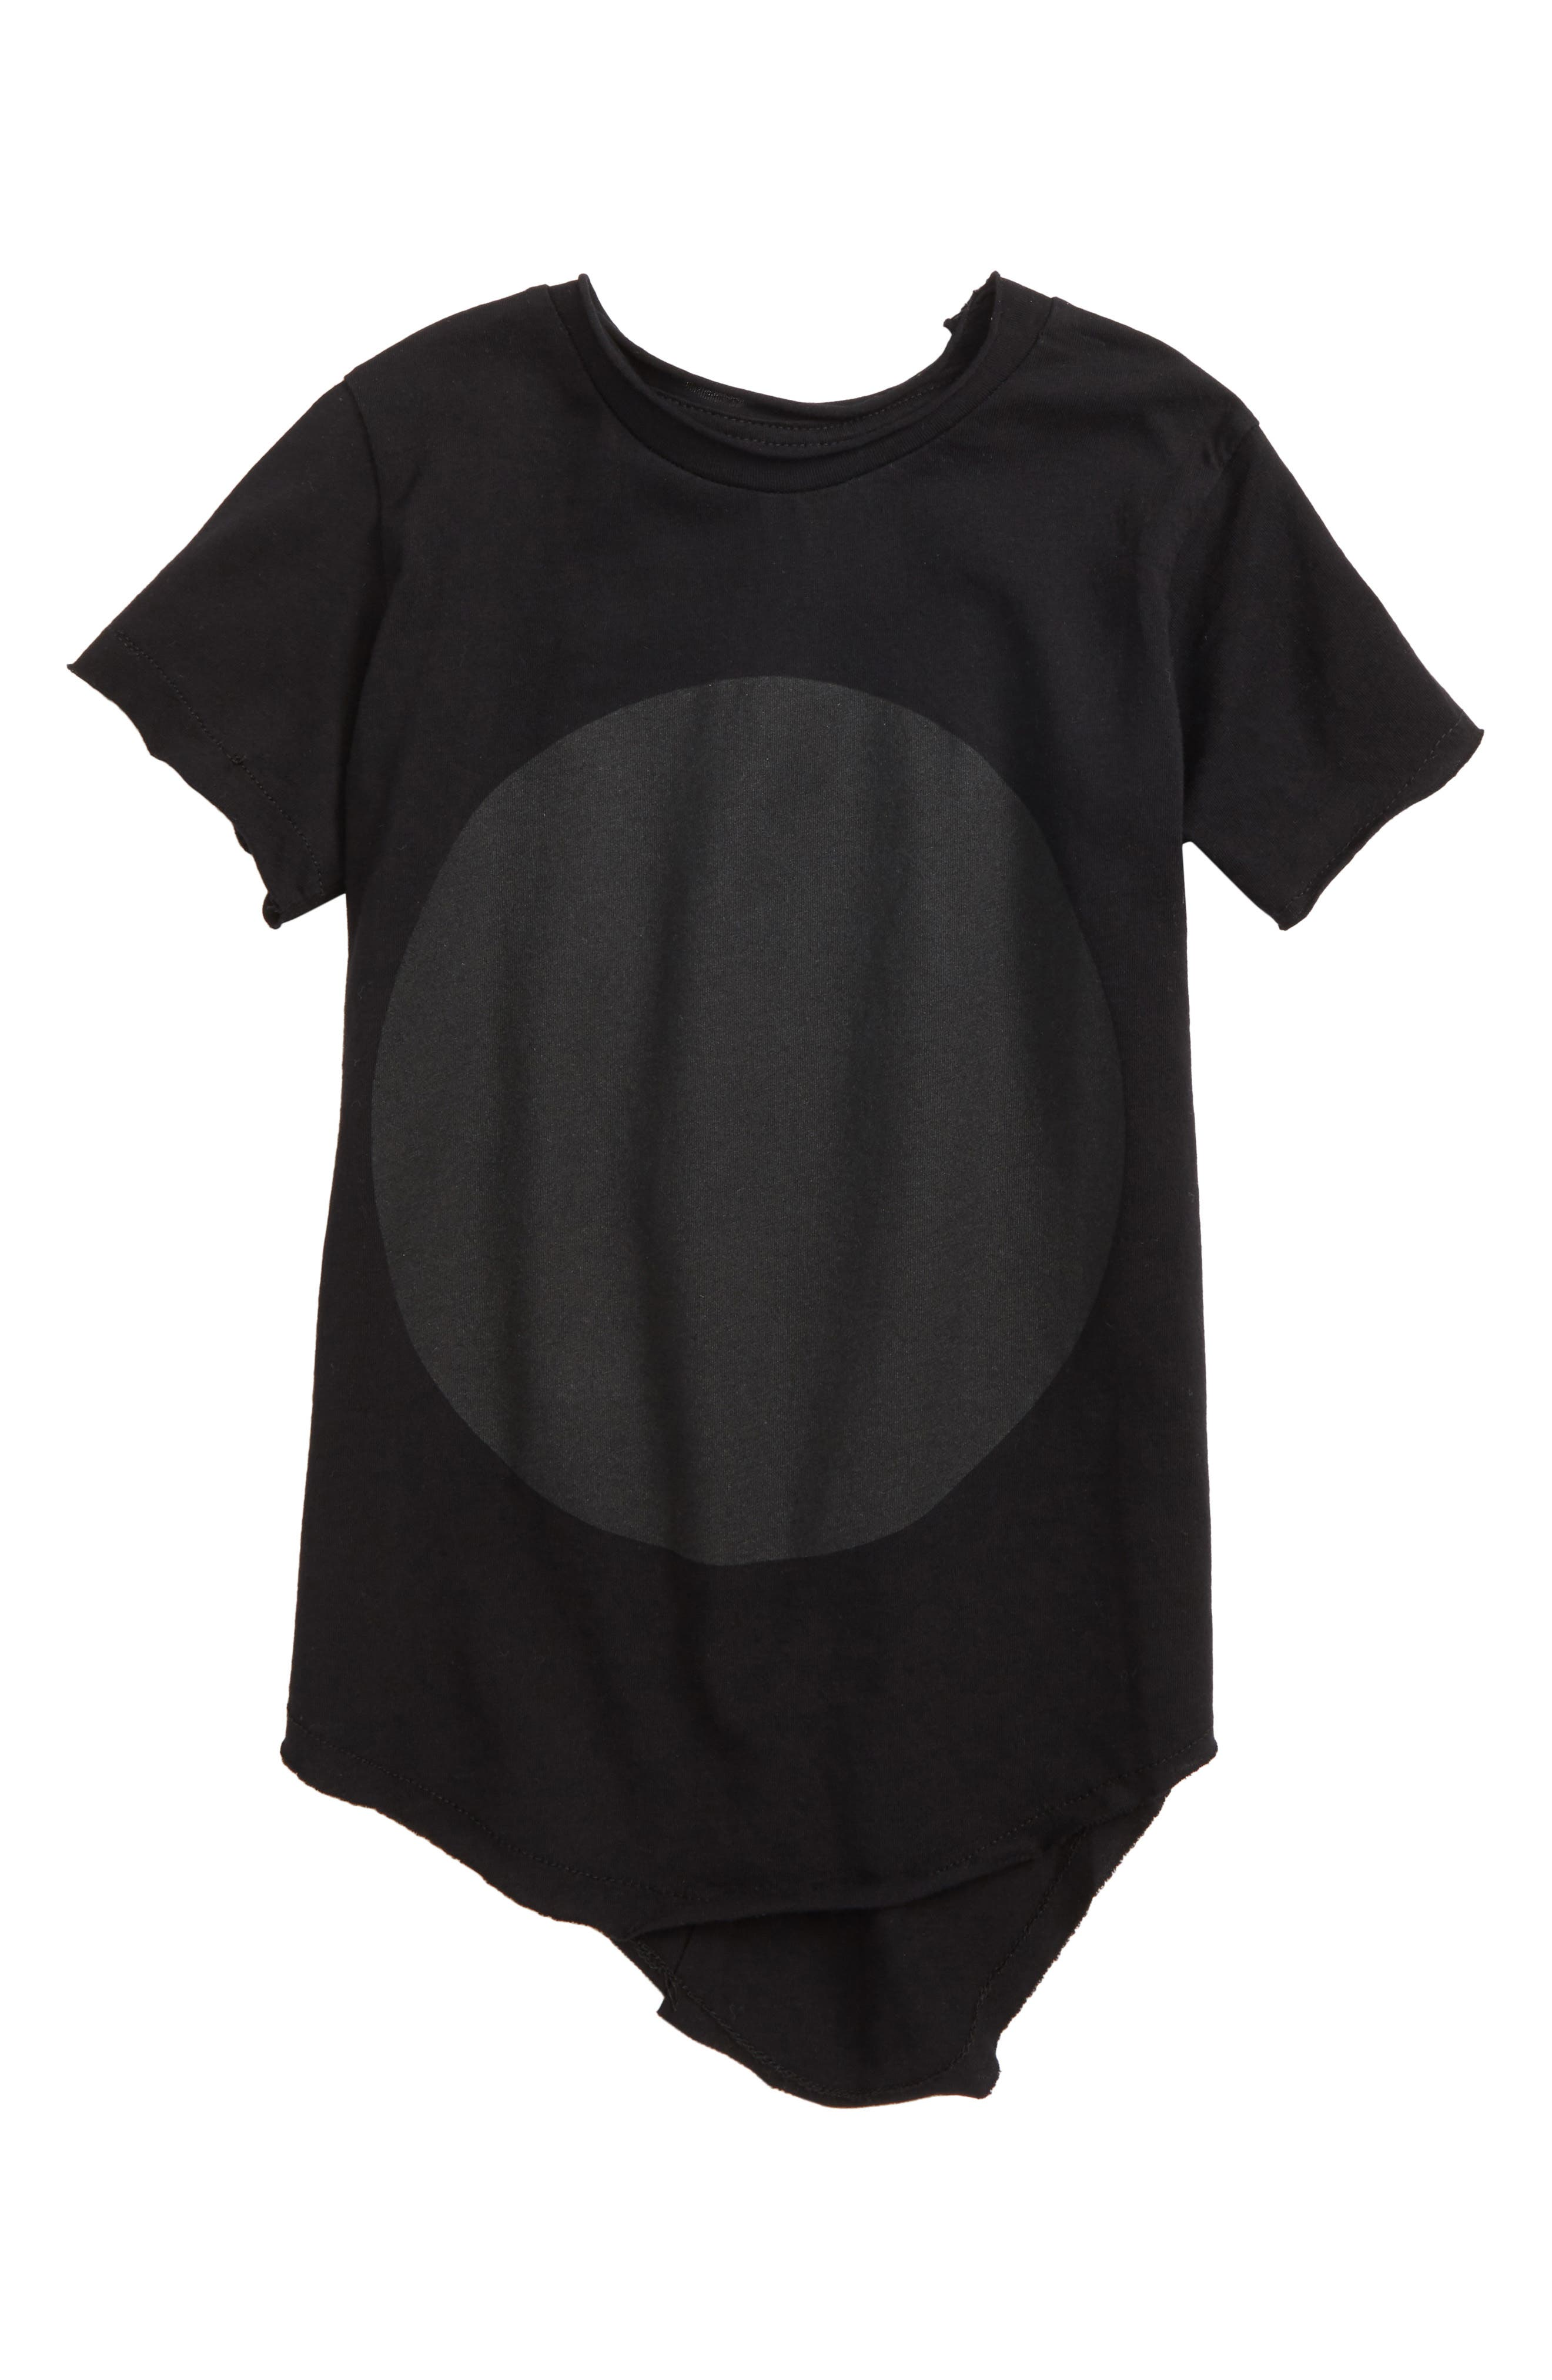 Circle Graphic Shirt,                             Main thumbnail 1, color,                             Black